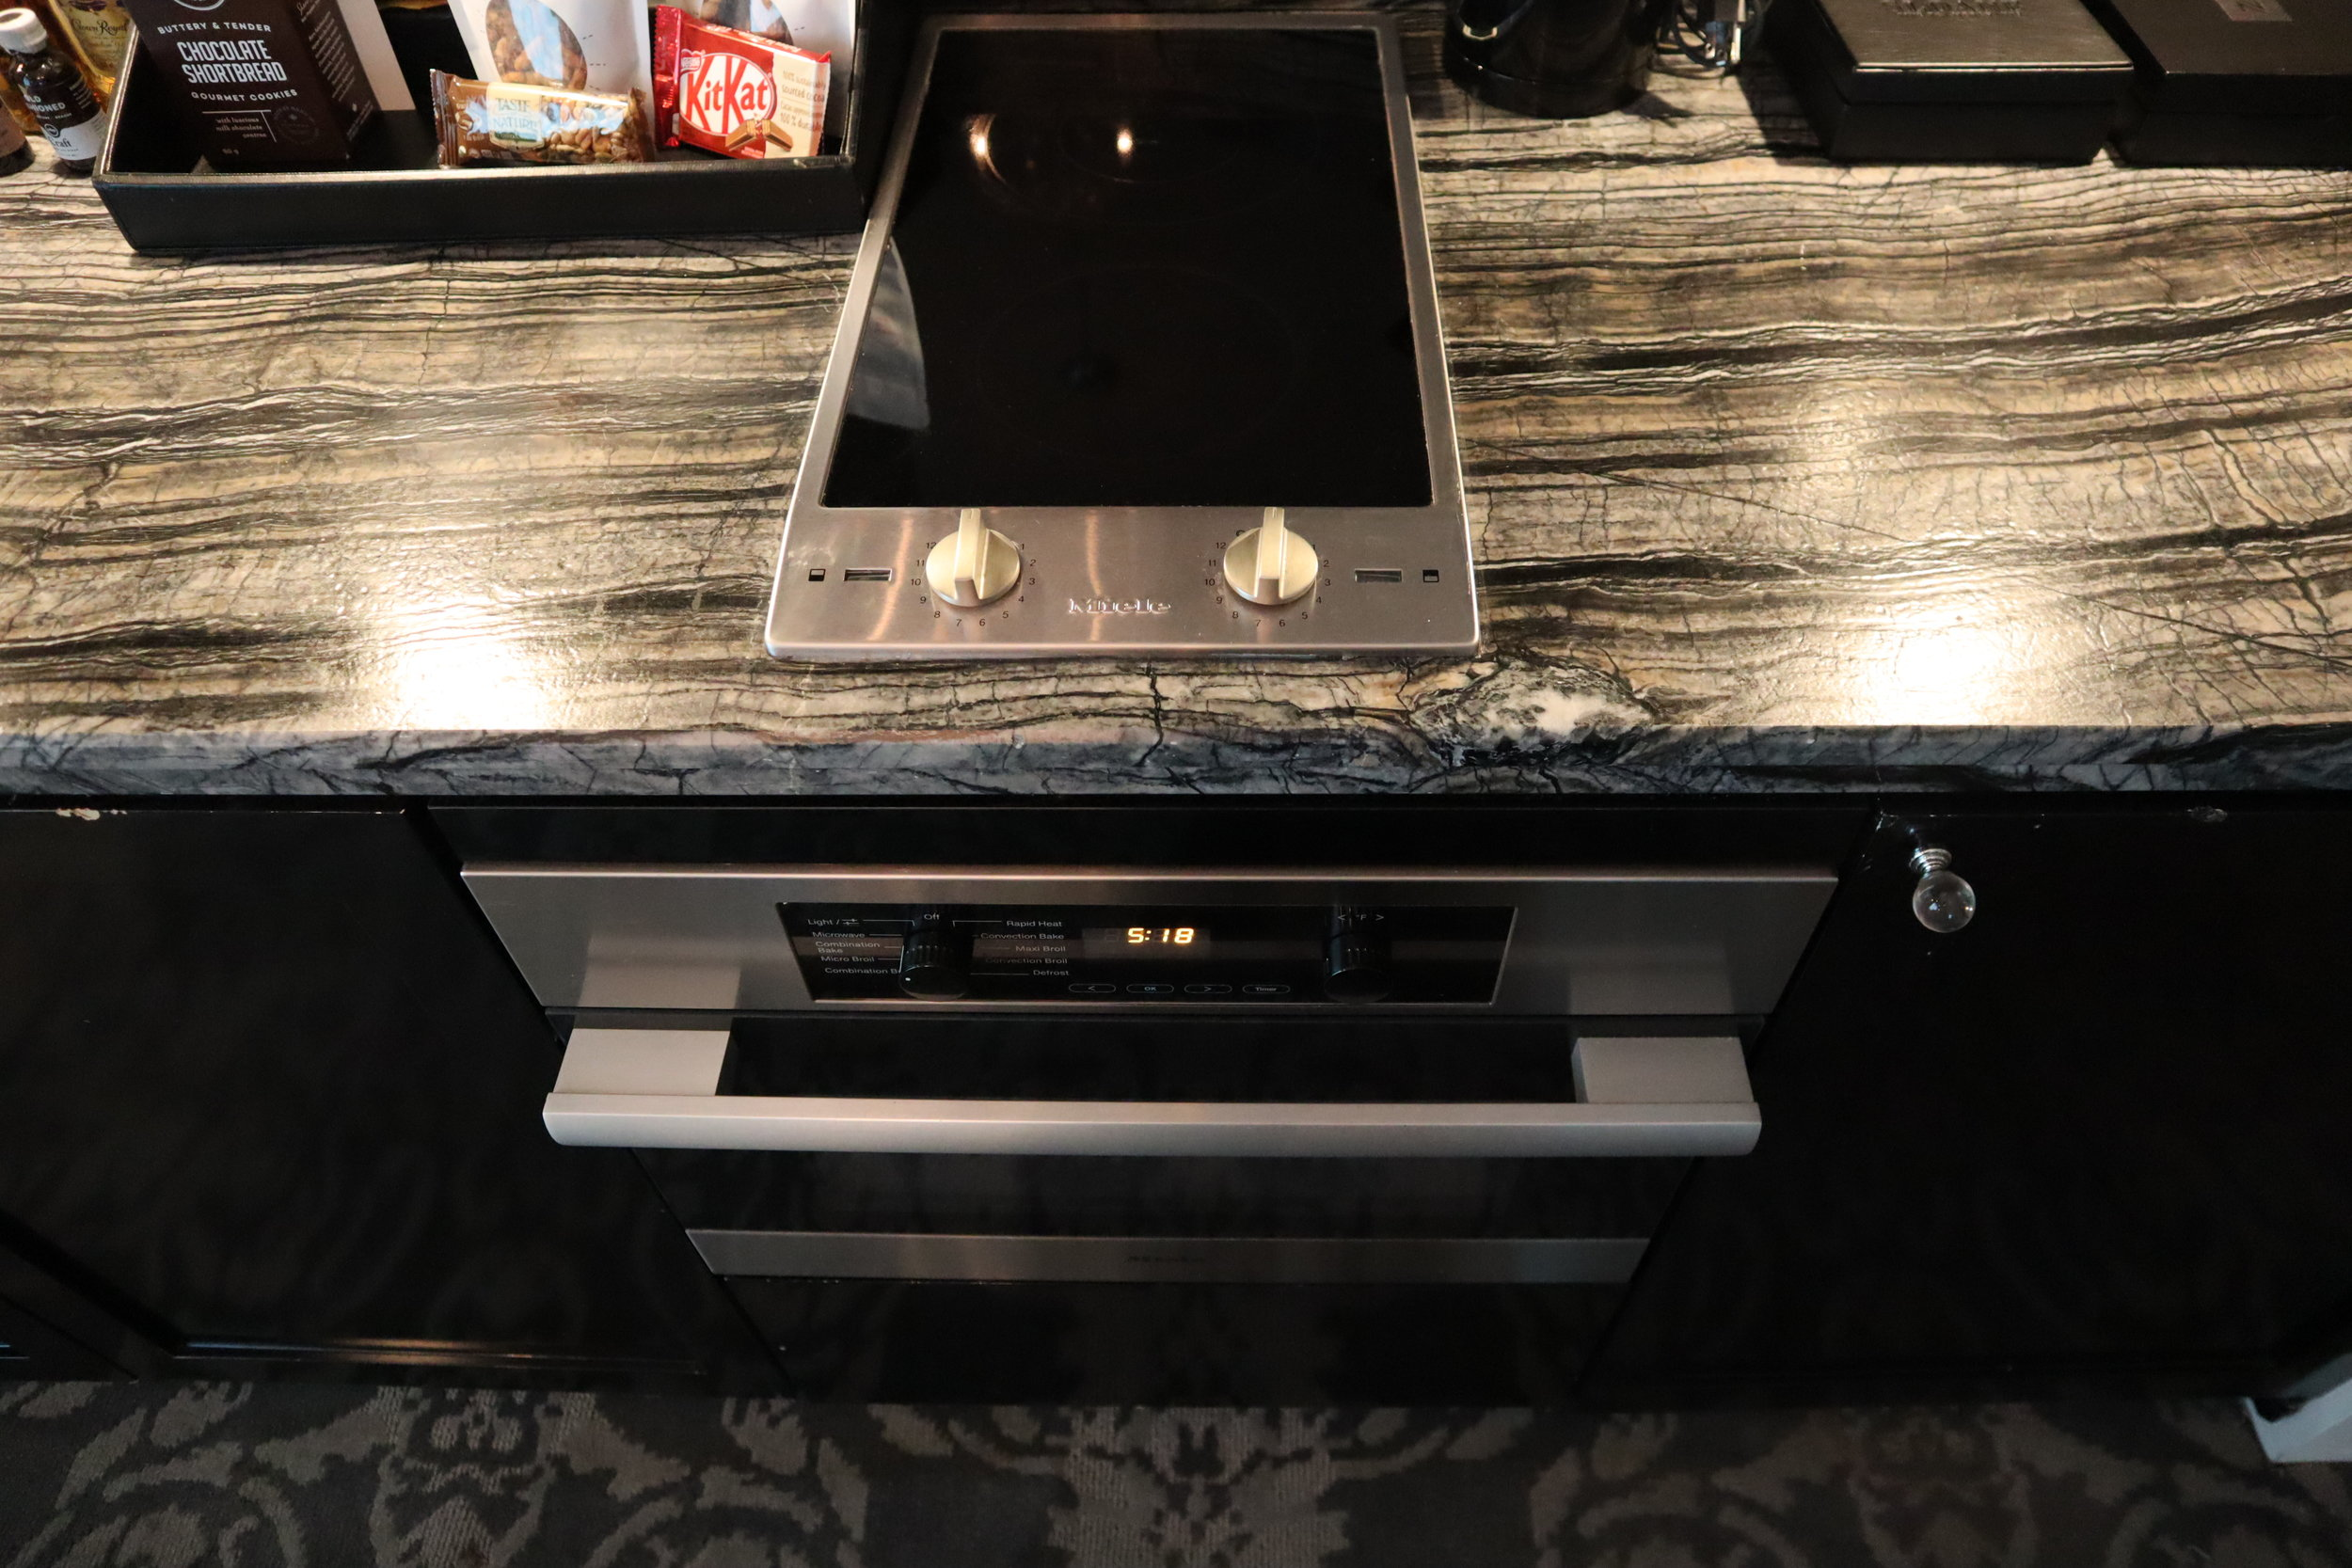 St. Regis Toronto – Two-bedroom suite oven and stove